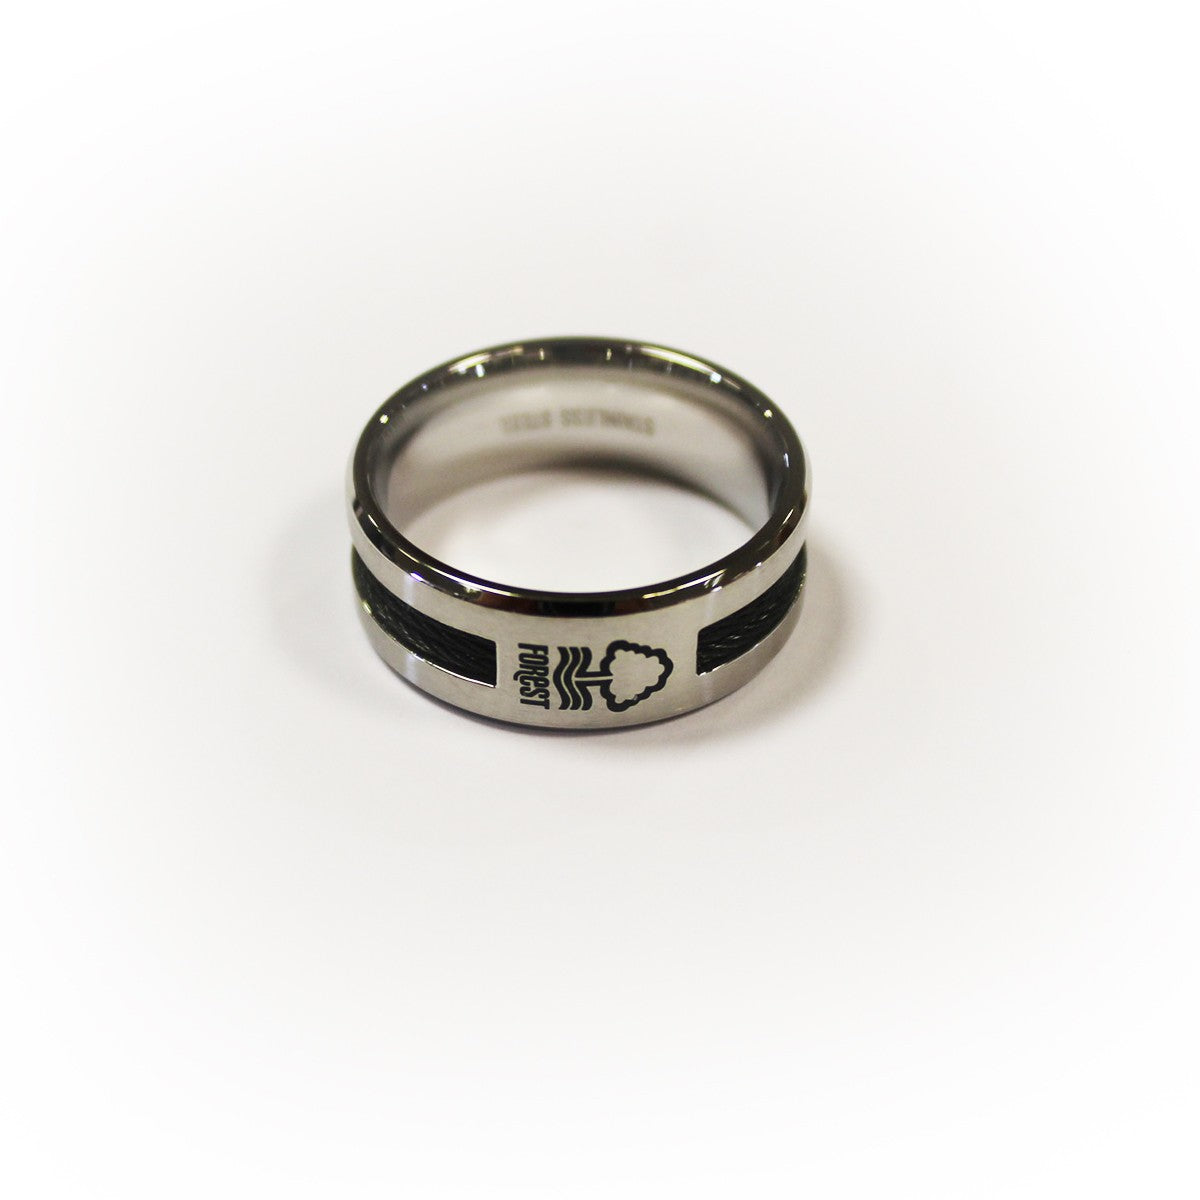 NFFC Black Inlay Crest Ring